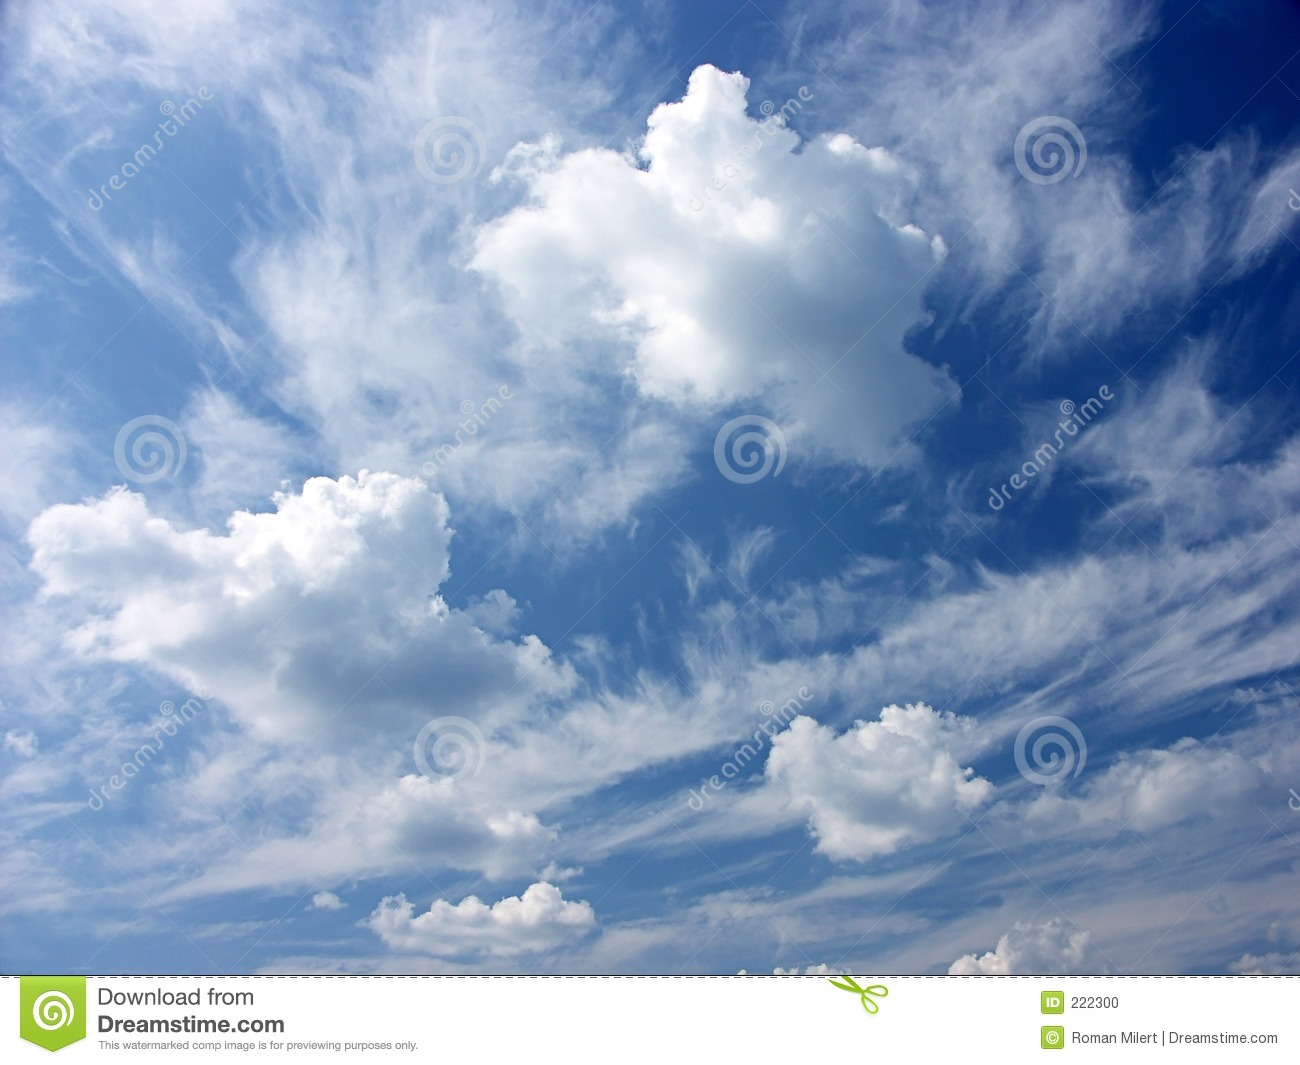 Dreamy Clouds Stock Photo - Image: 222300